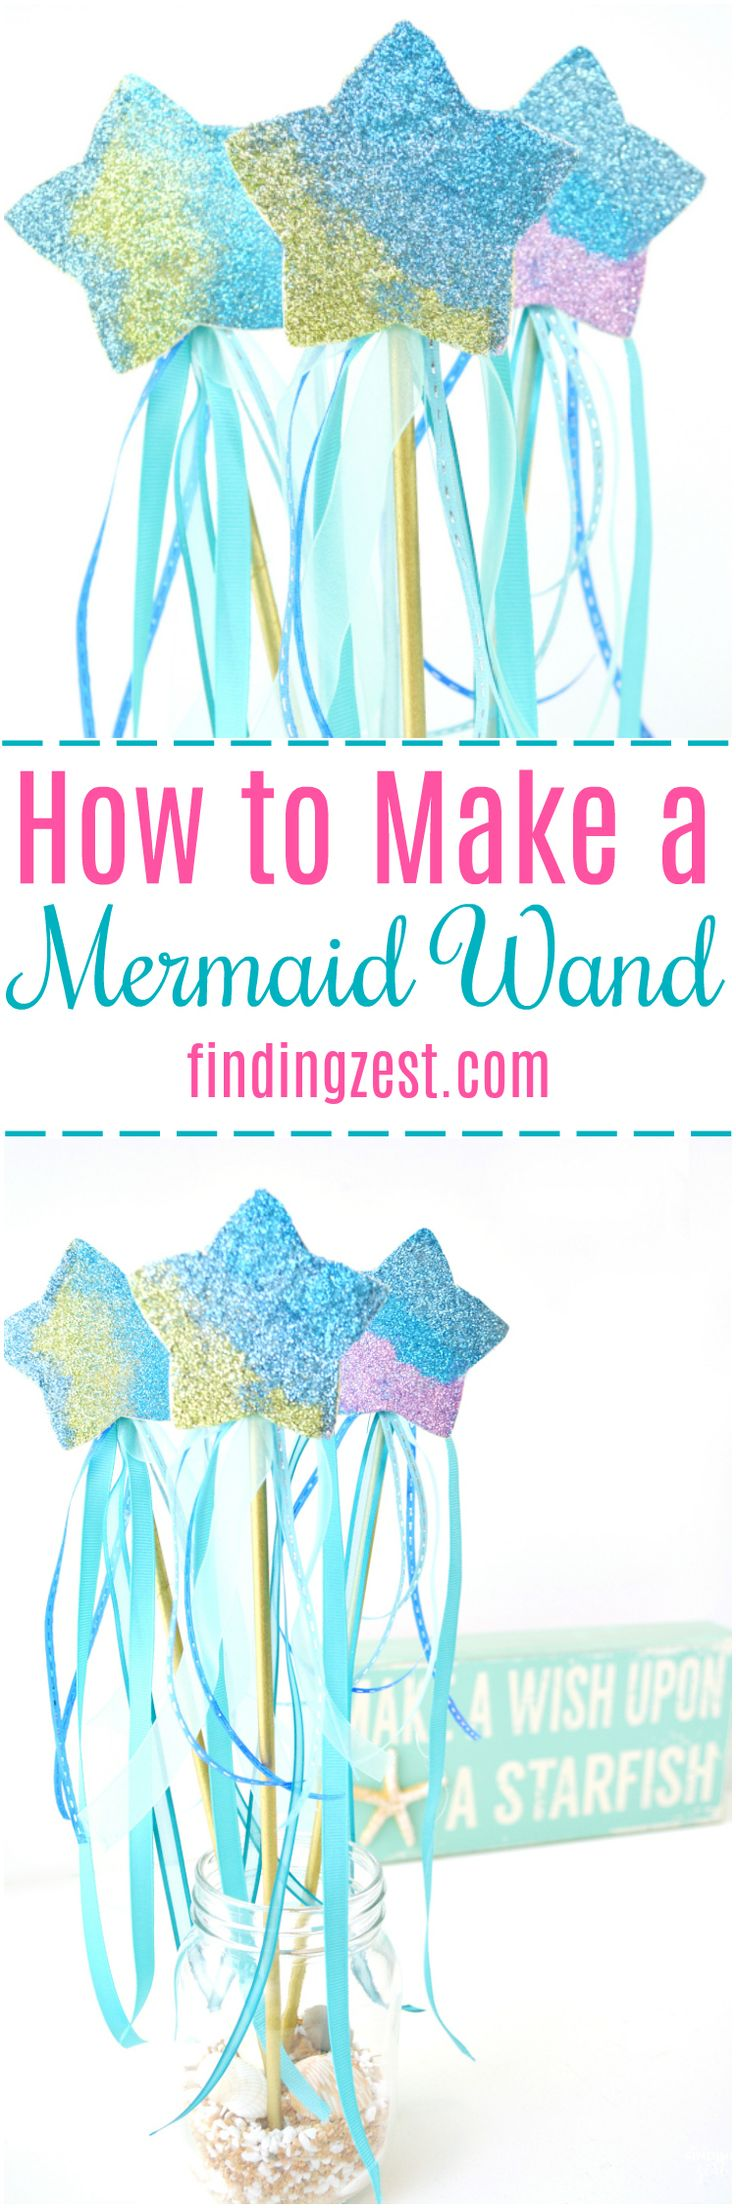 Ever wonder how to make a mermaid wand? These step by step instructions will show you how easy it is to create a magic wand for kids fit for any mermaid fan! Makes for great mermaid birthday party favors or craft activity. Colors can easily be switched out to create a star wand for any princess, fairy or unicorn party. #mermaid #mermaidparty #glitter #kidscraft